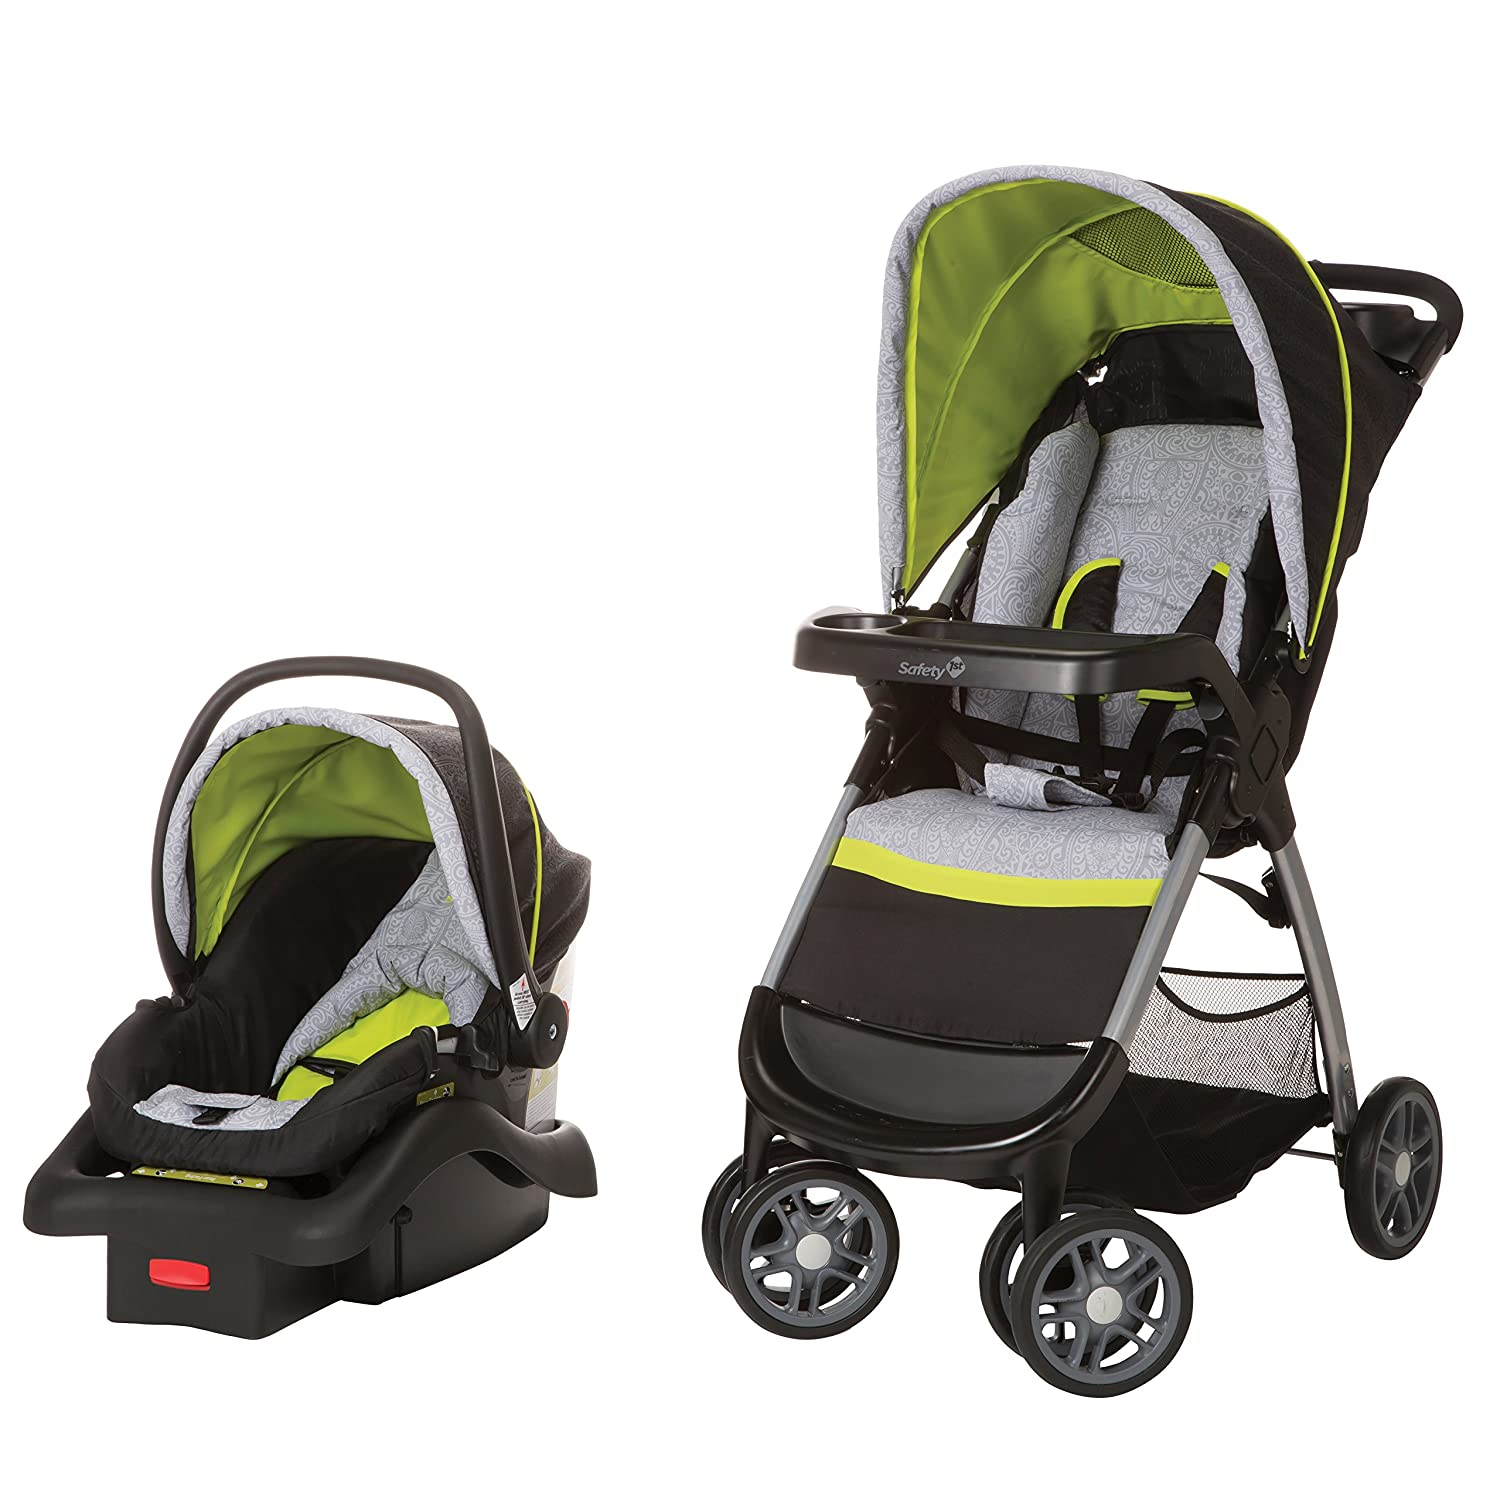 825b53988 Amazon.com   Safety 1st Amble Quad Travel System with Onboard 22 ...